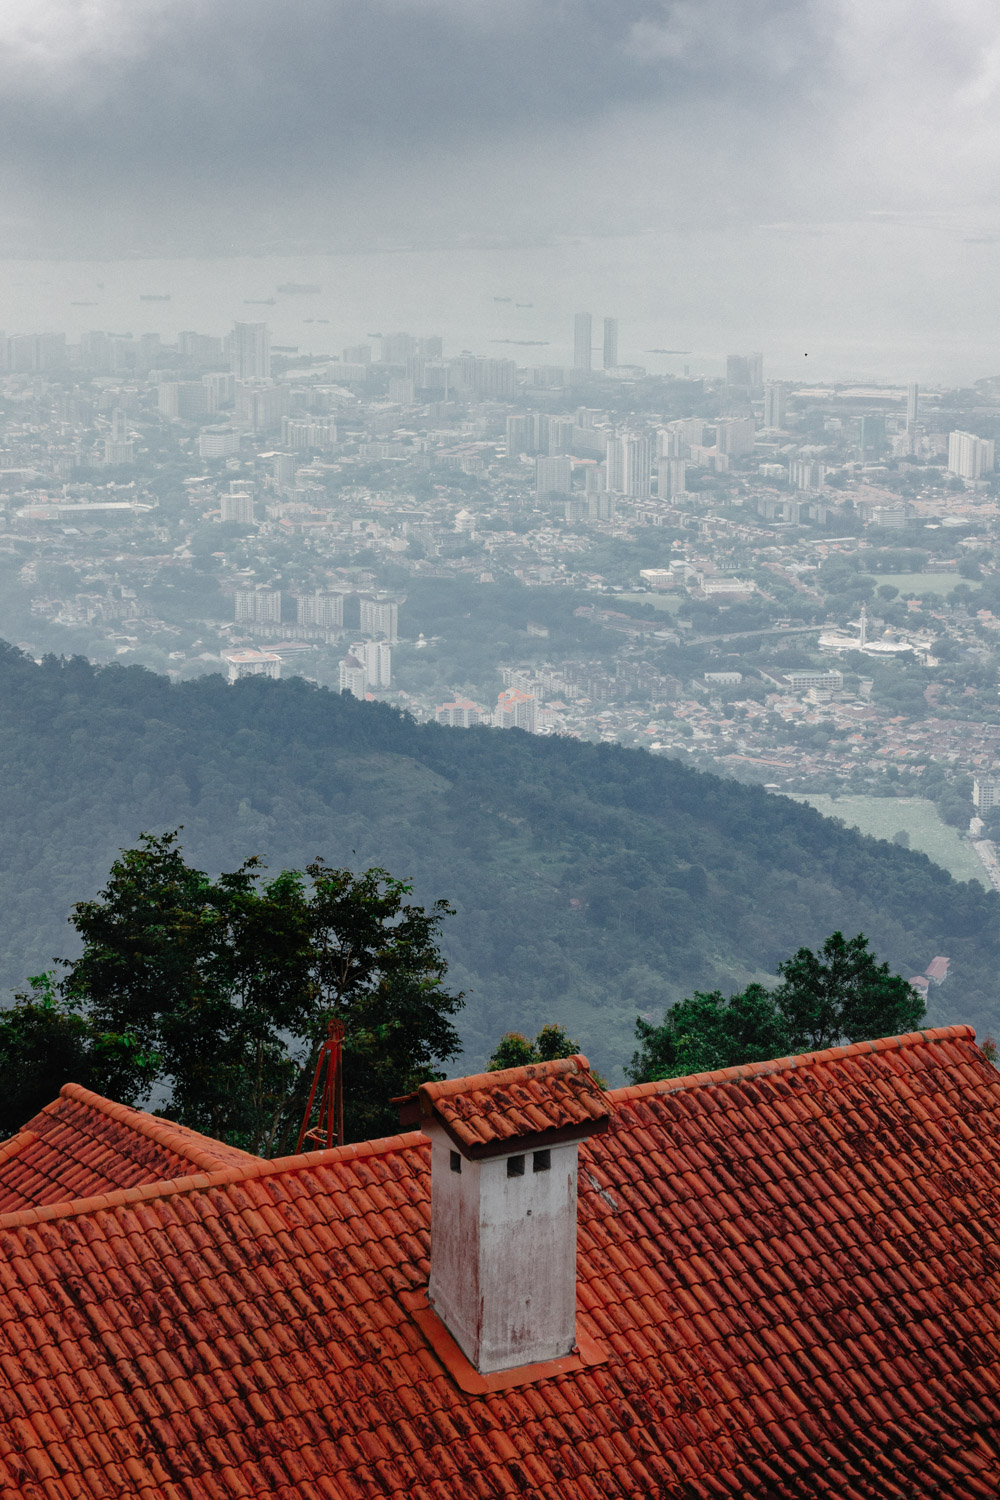 Up on Penang Hill